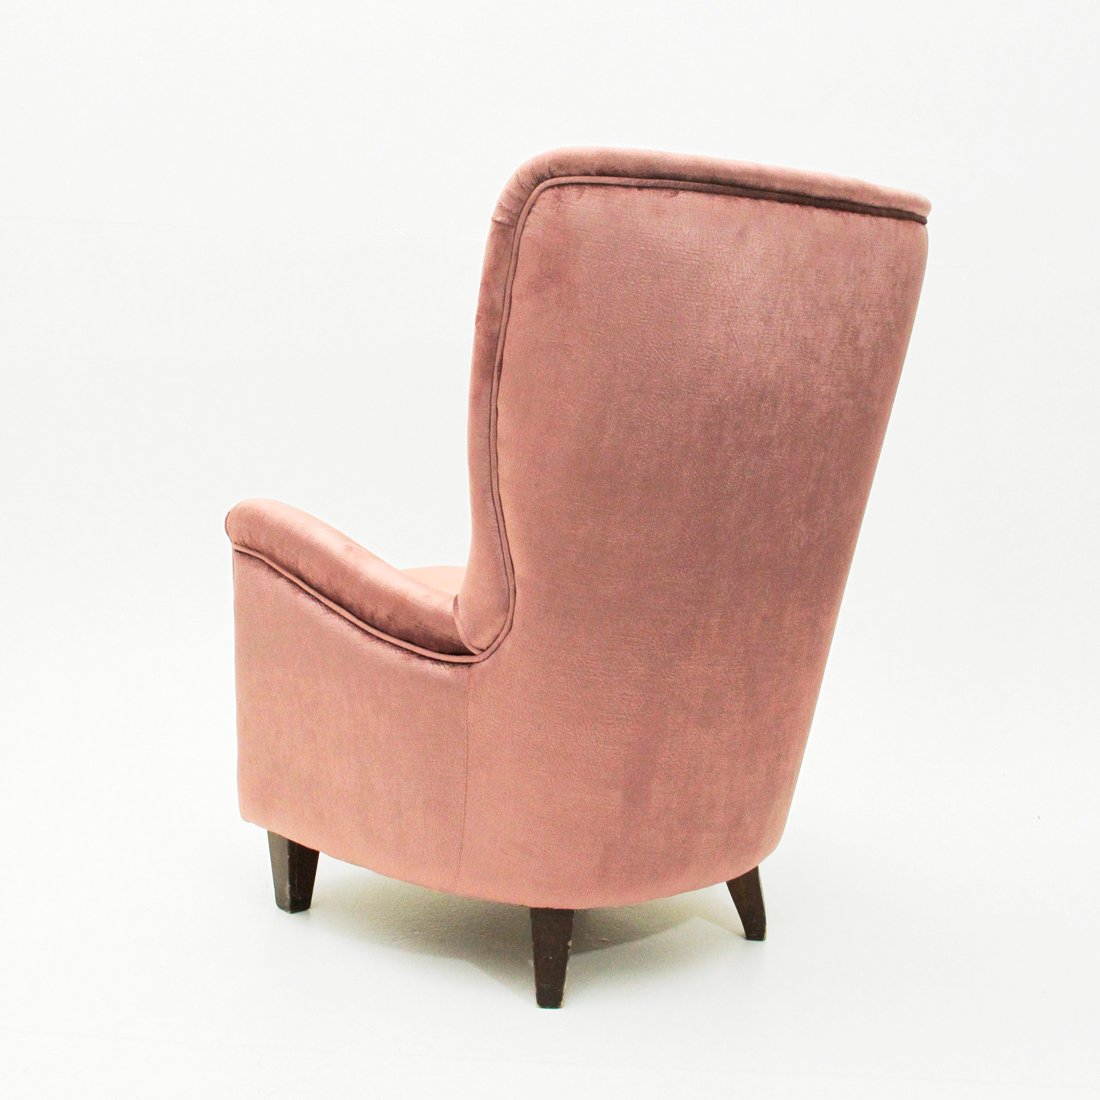 Italian Pink Velvet Lounge Chair, 1950s for sale at Pamono